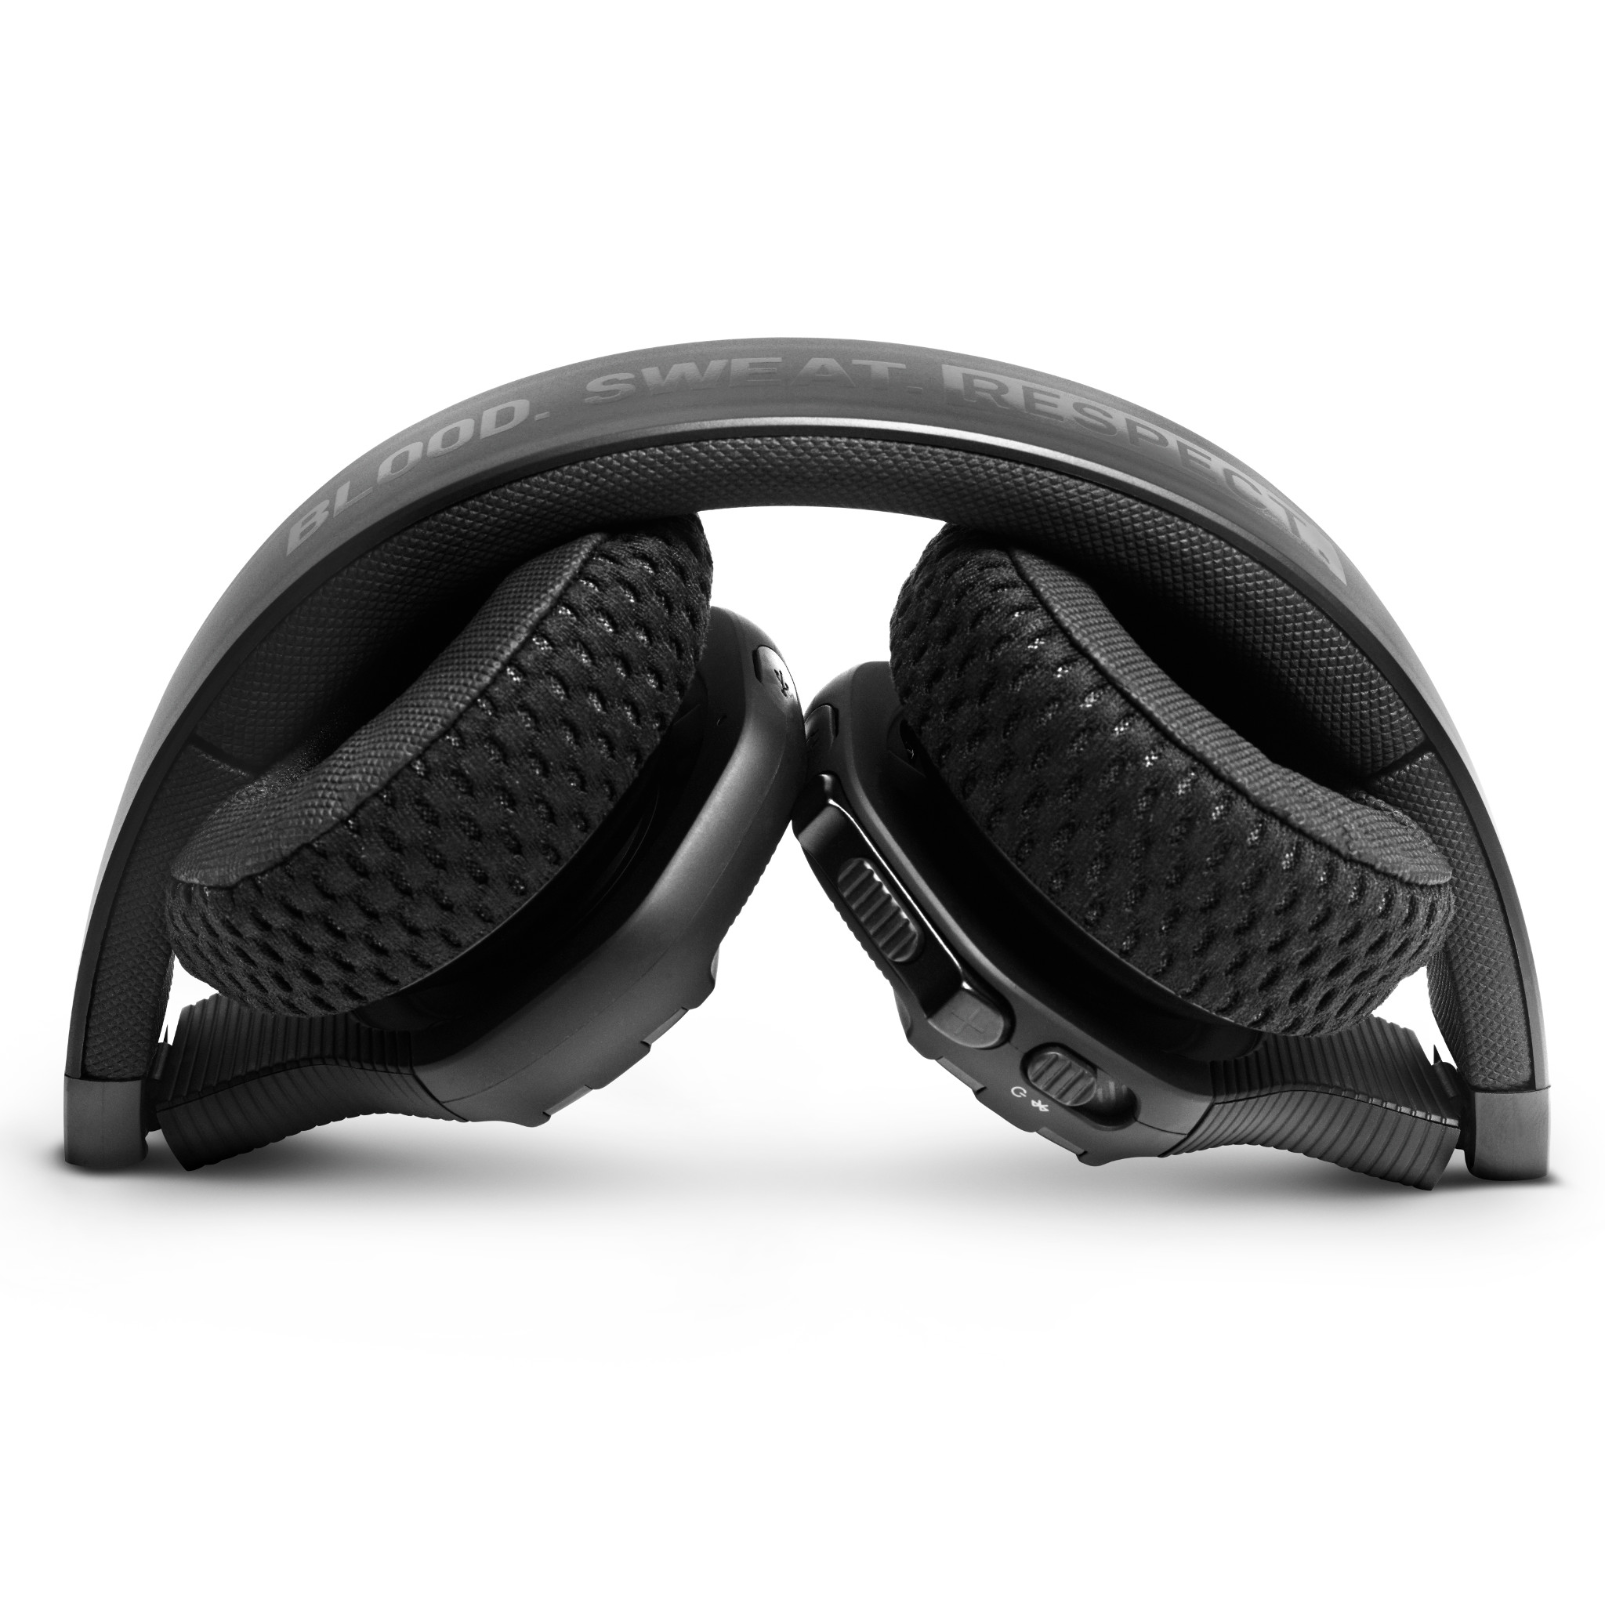 UA Sport Wireless Train Project Rock – Engineered by JBL - Black - On-ear sport Headphones - Detailshot 2